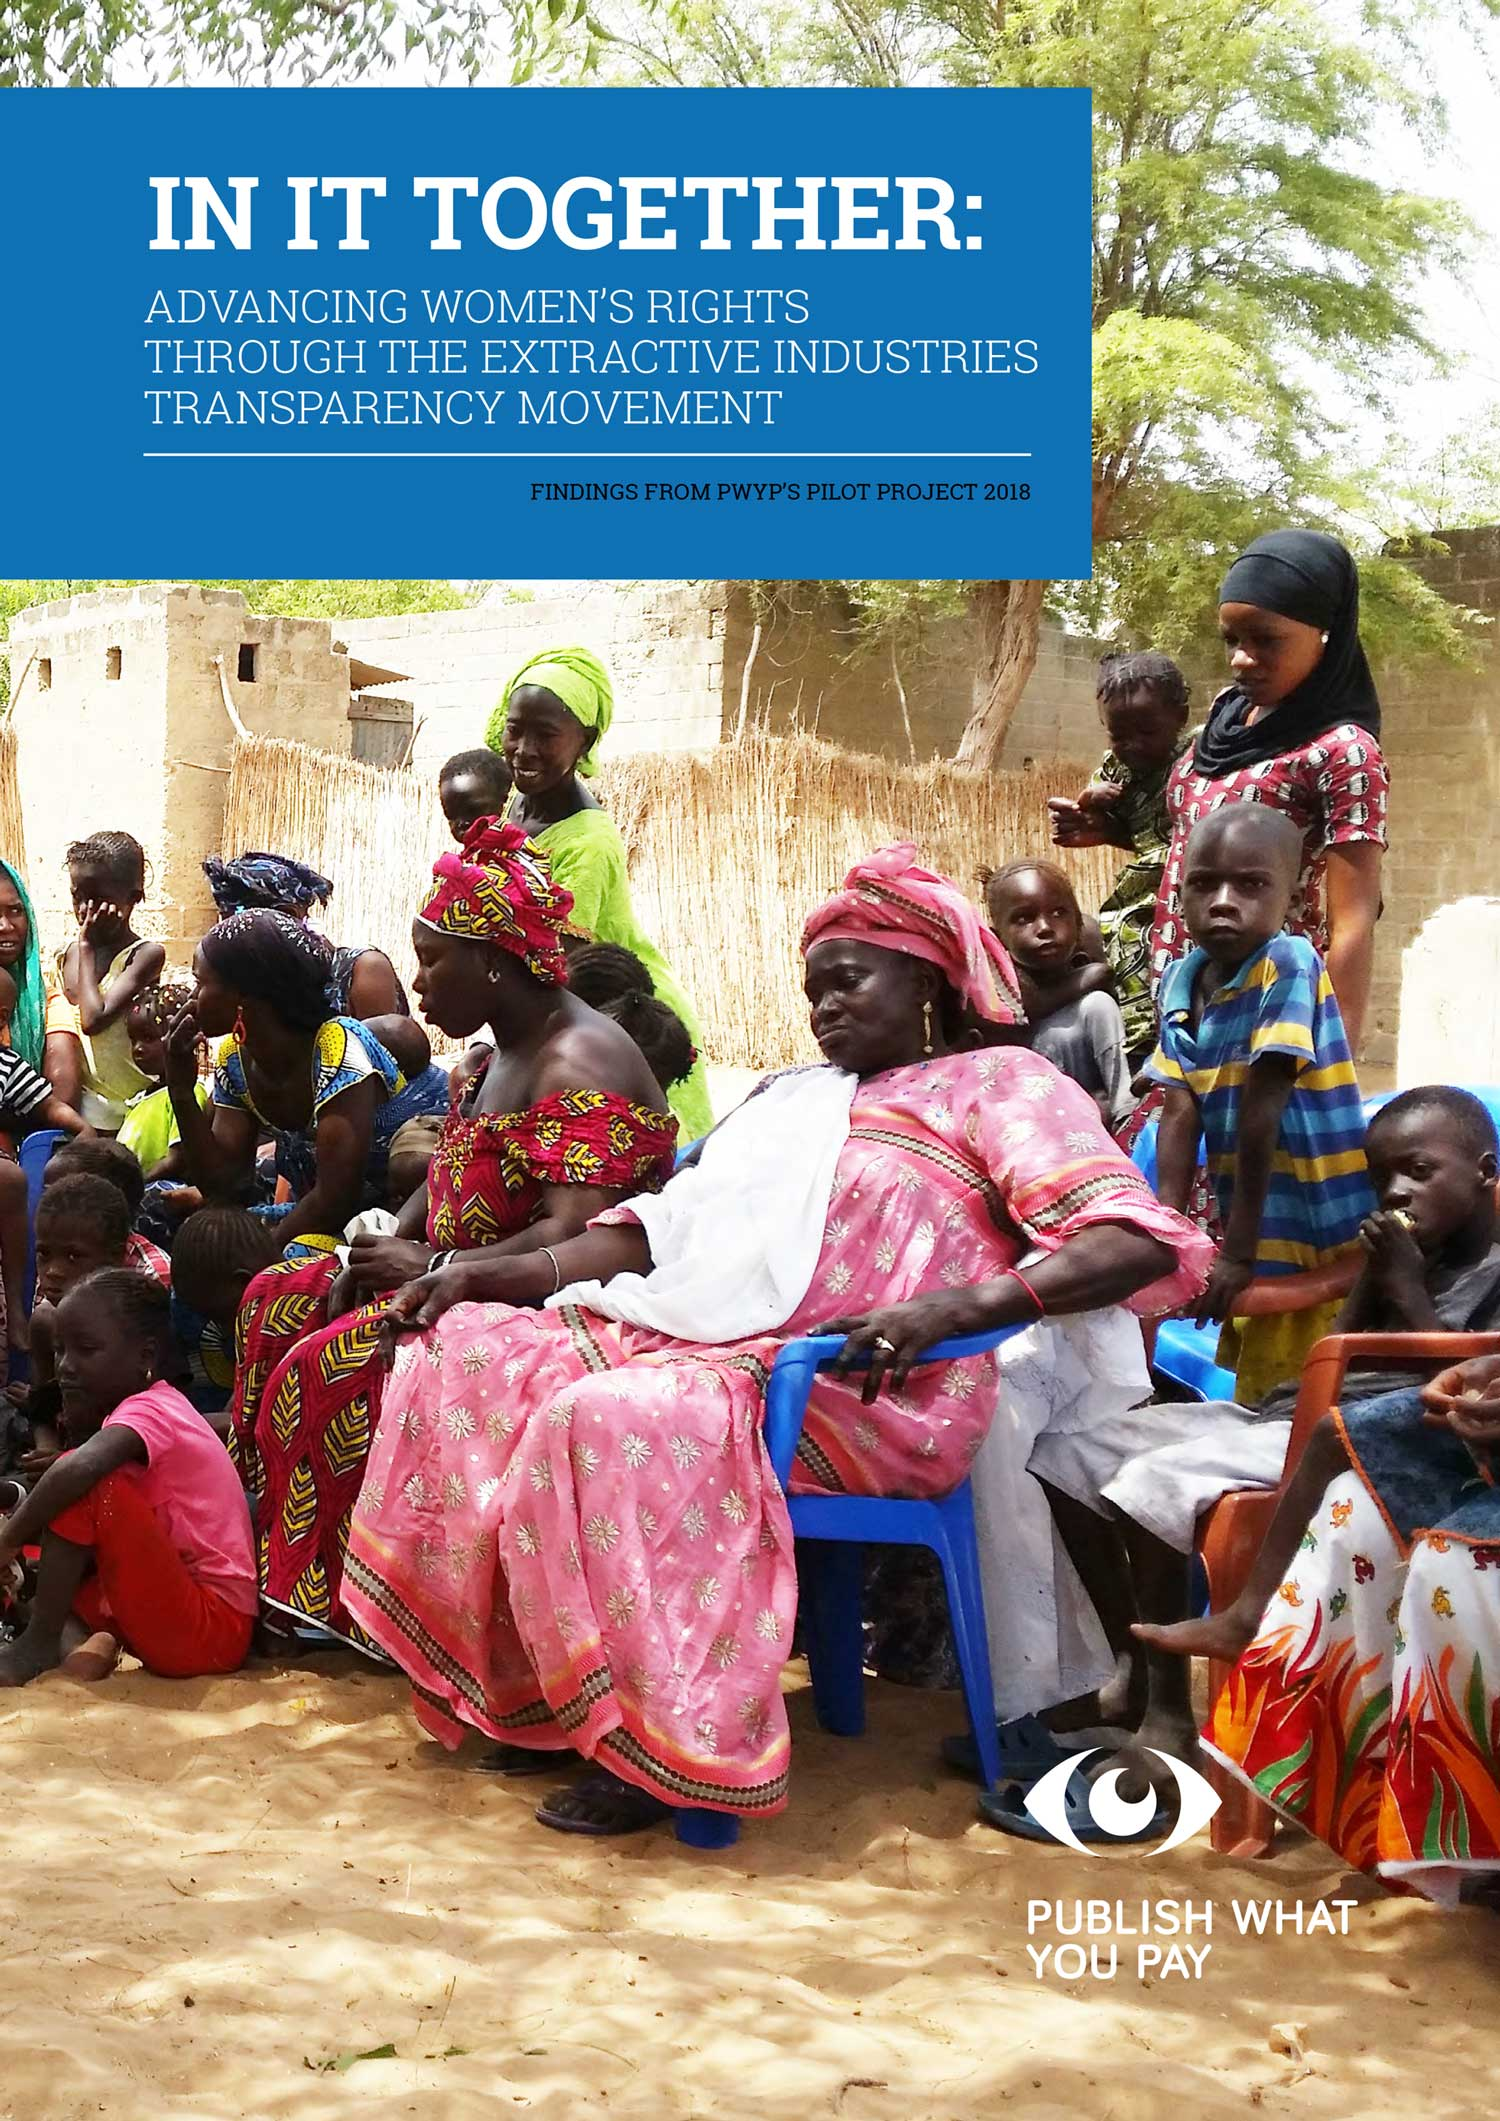 In it together: advancing women's rights through the extractive industries transparency movement